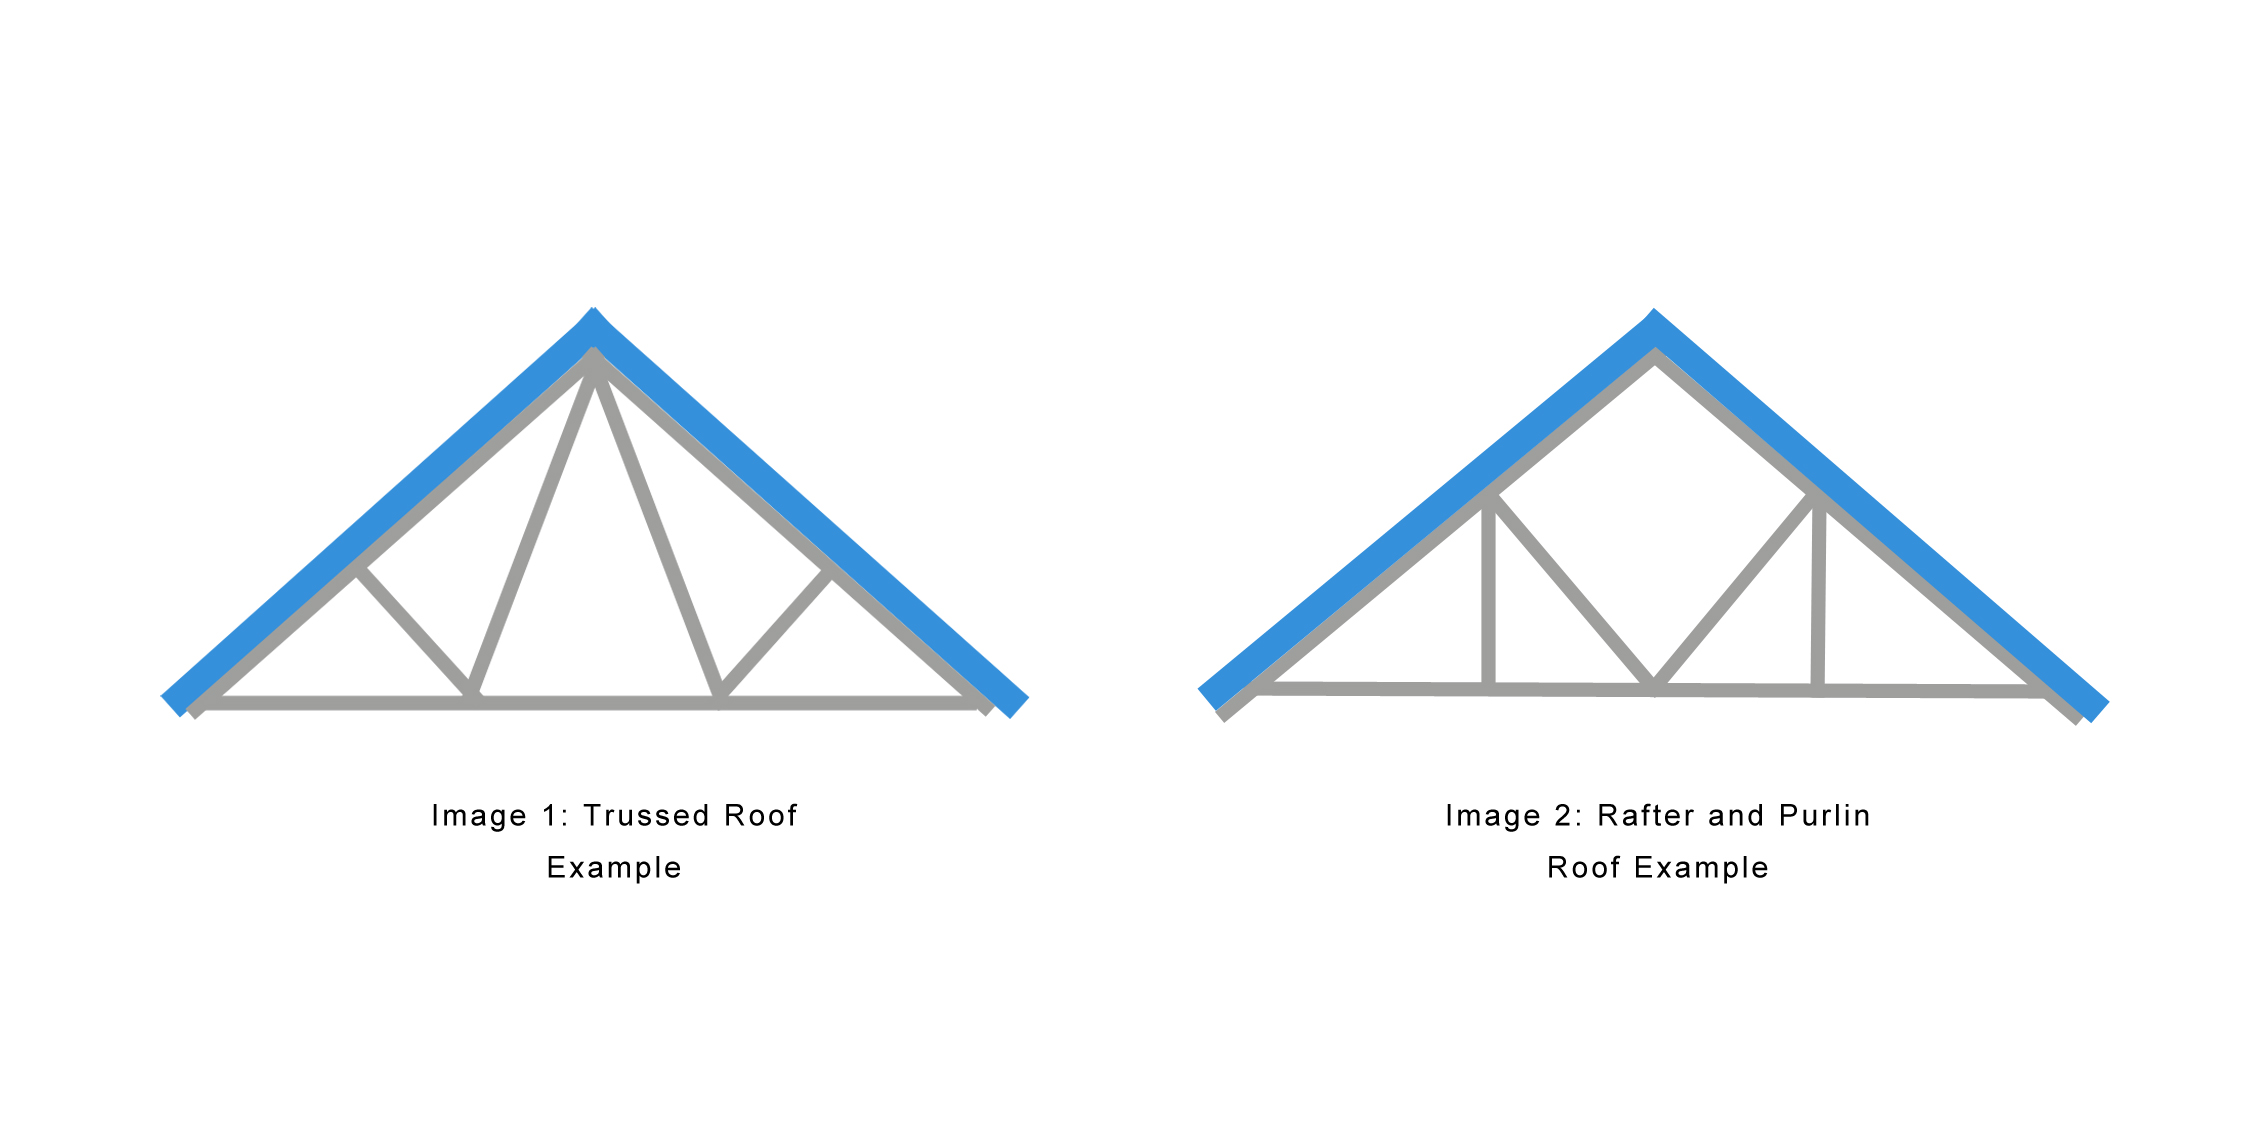 Image showing a trussed roof and purlin roof example